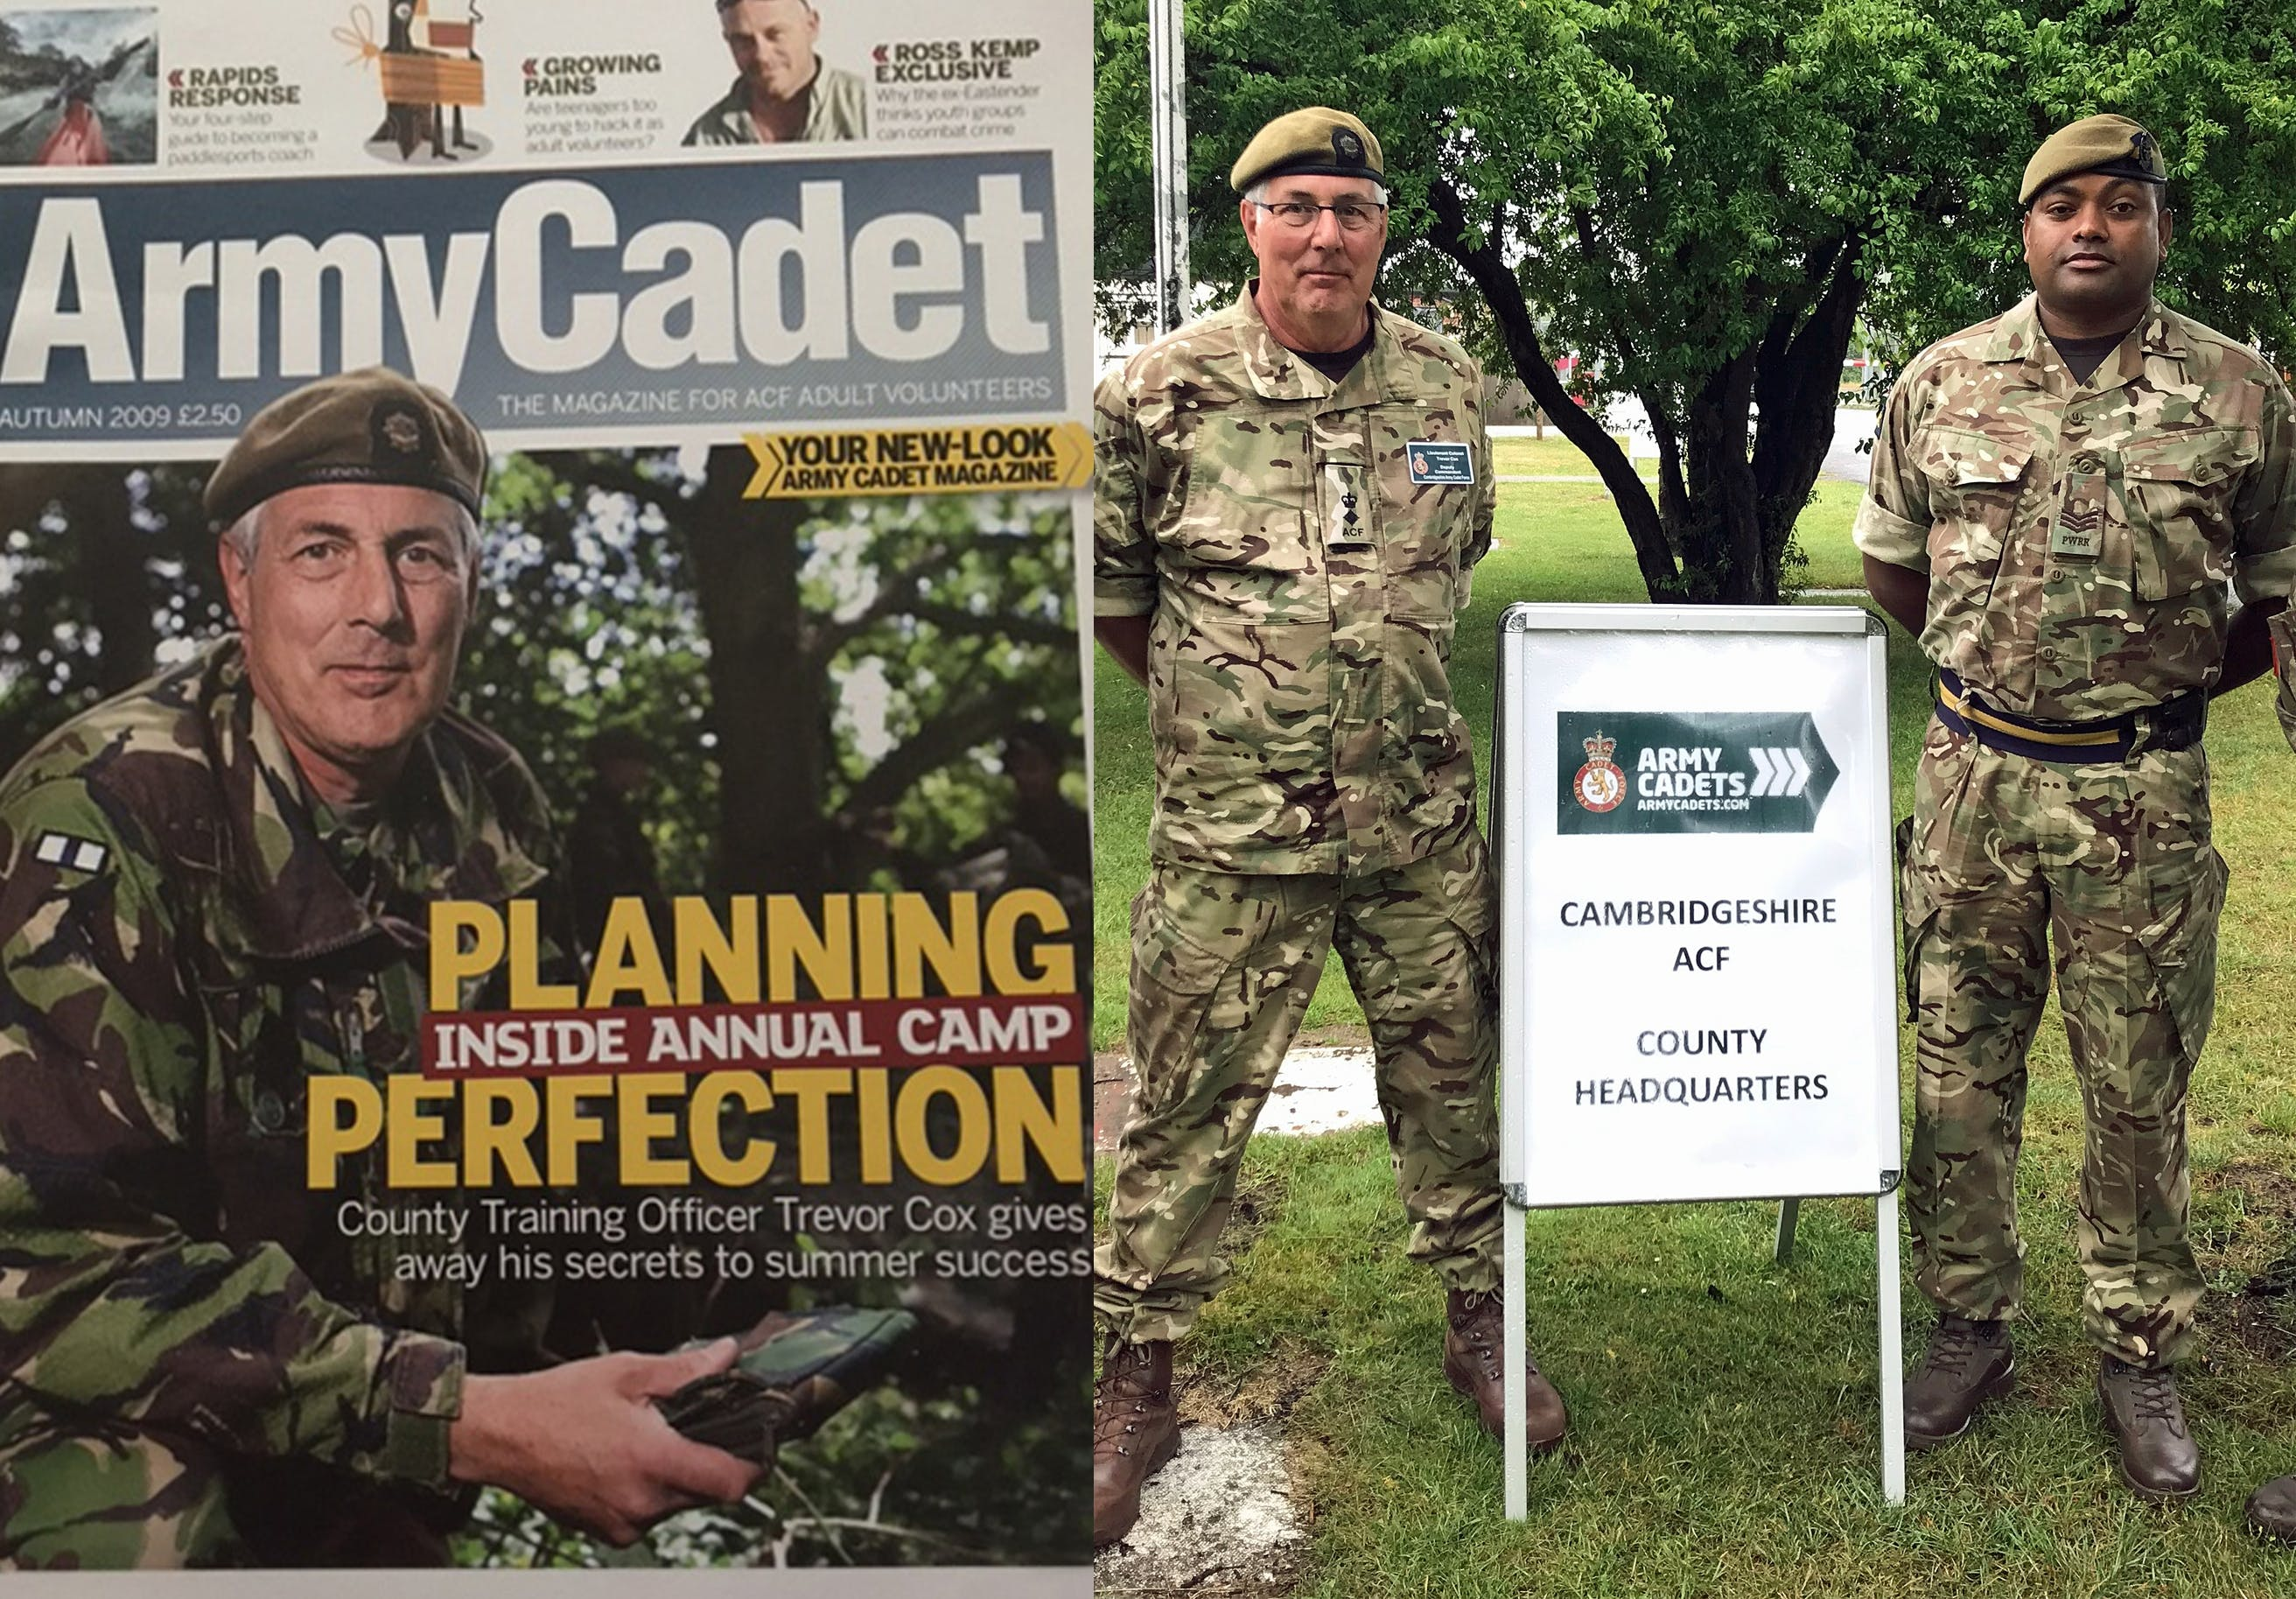 Trevor Cox on the front page of the Army Cadet magazine in 2009